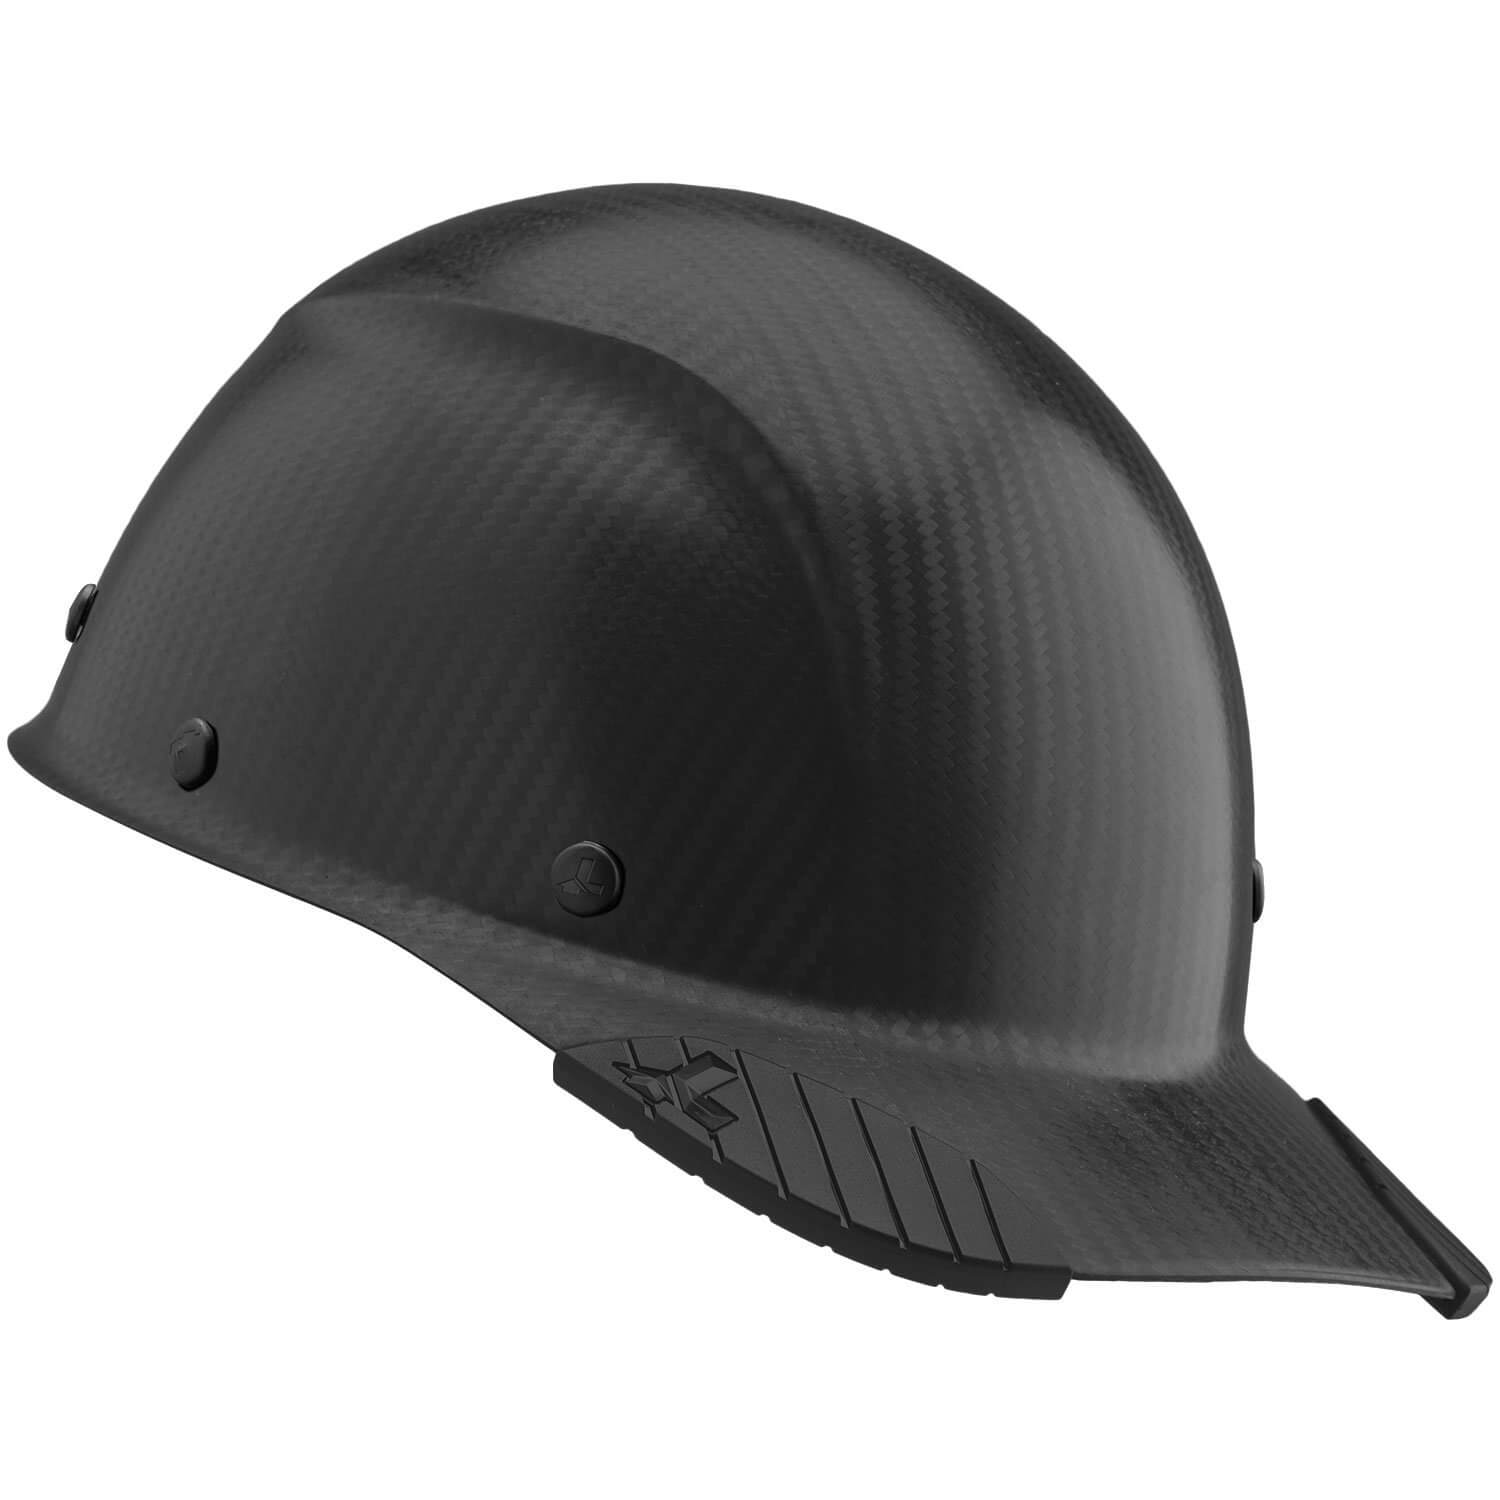 335e3f12 Supplied by MTN Shop; Carbon Fiber Hard Hat. Supplied by MTN Shop ...